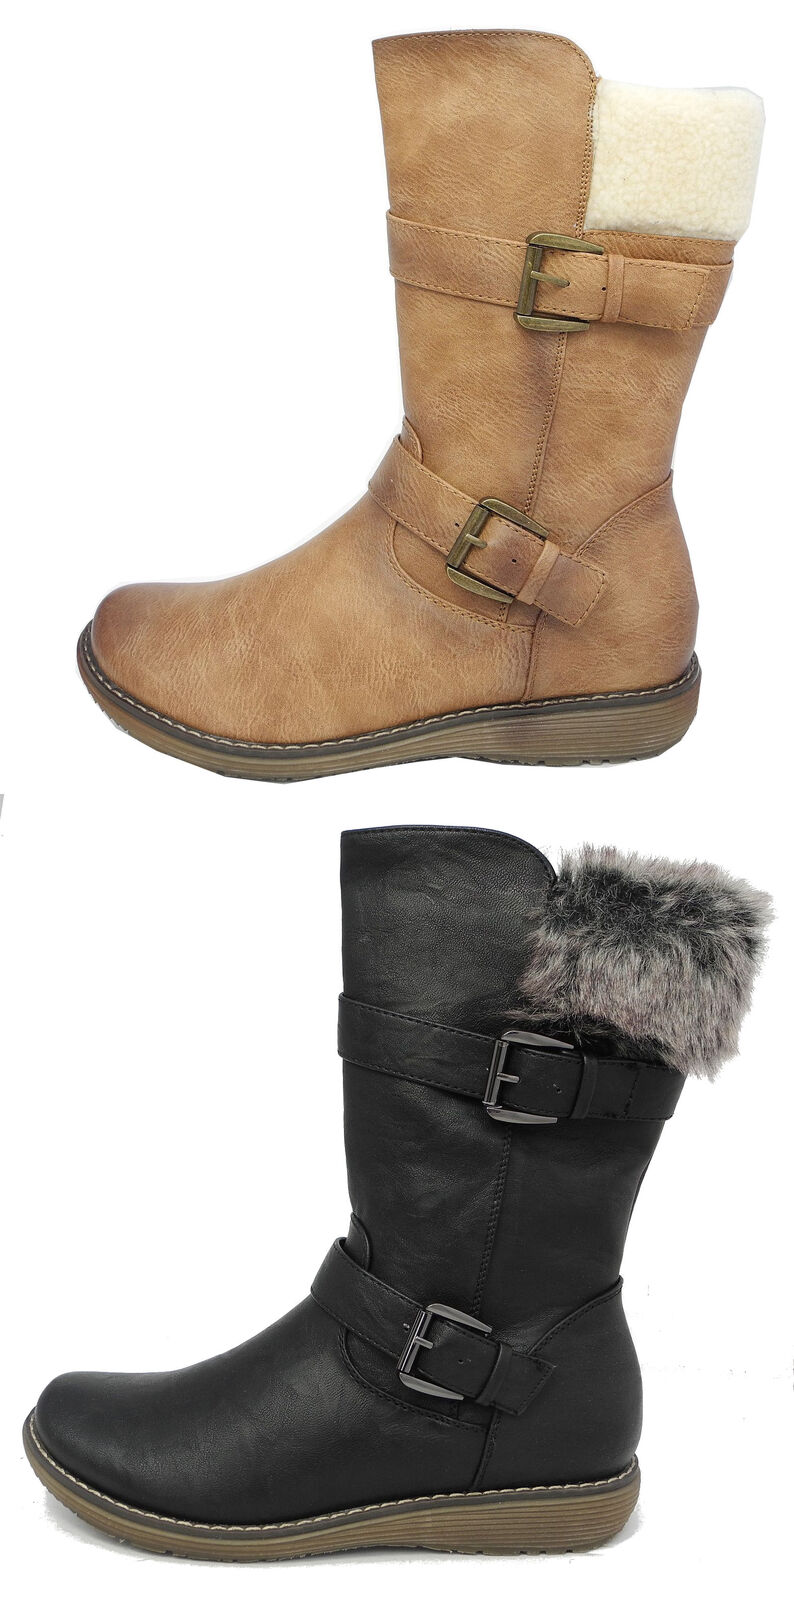 Womens Cats Eyes Leather Look Mid Calf Winter Boots Black Black Black Brown Size 3 4 5 6 7 8 f90db0